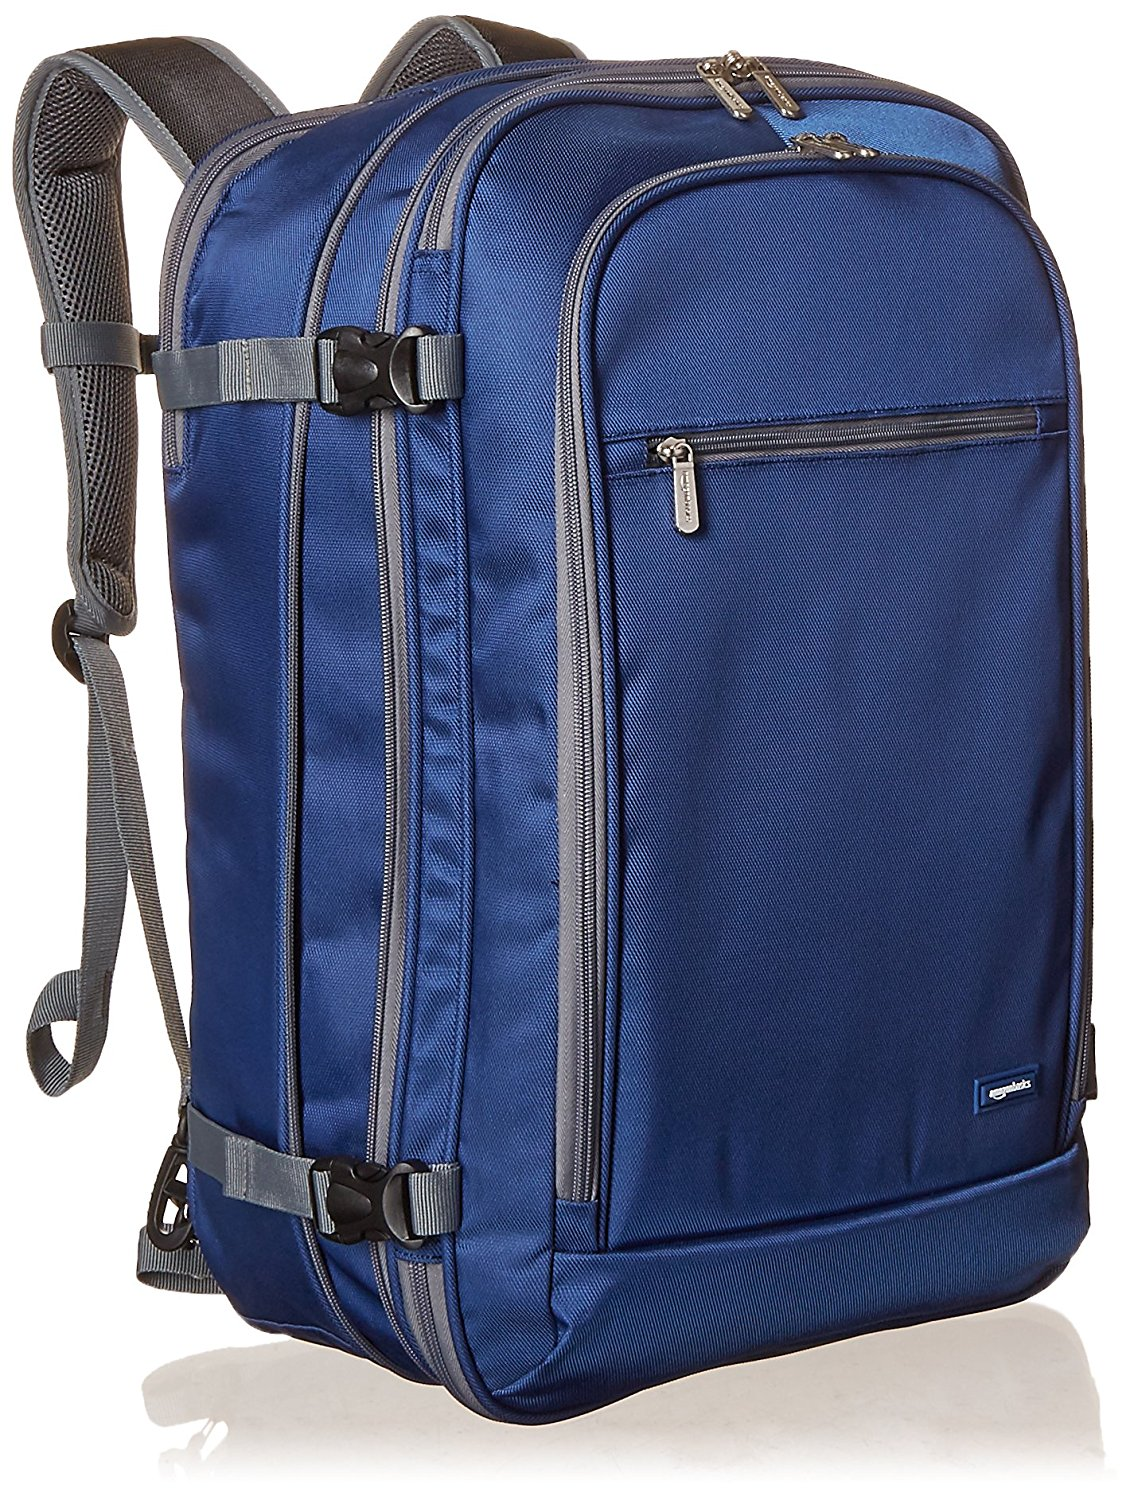 The Best Carry On Backpacks For International Travel From